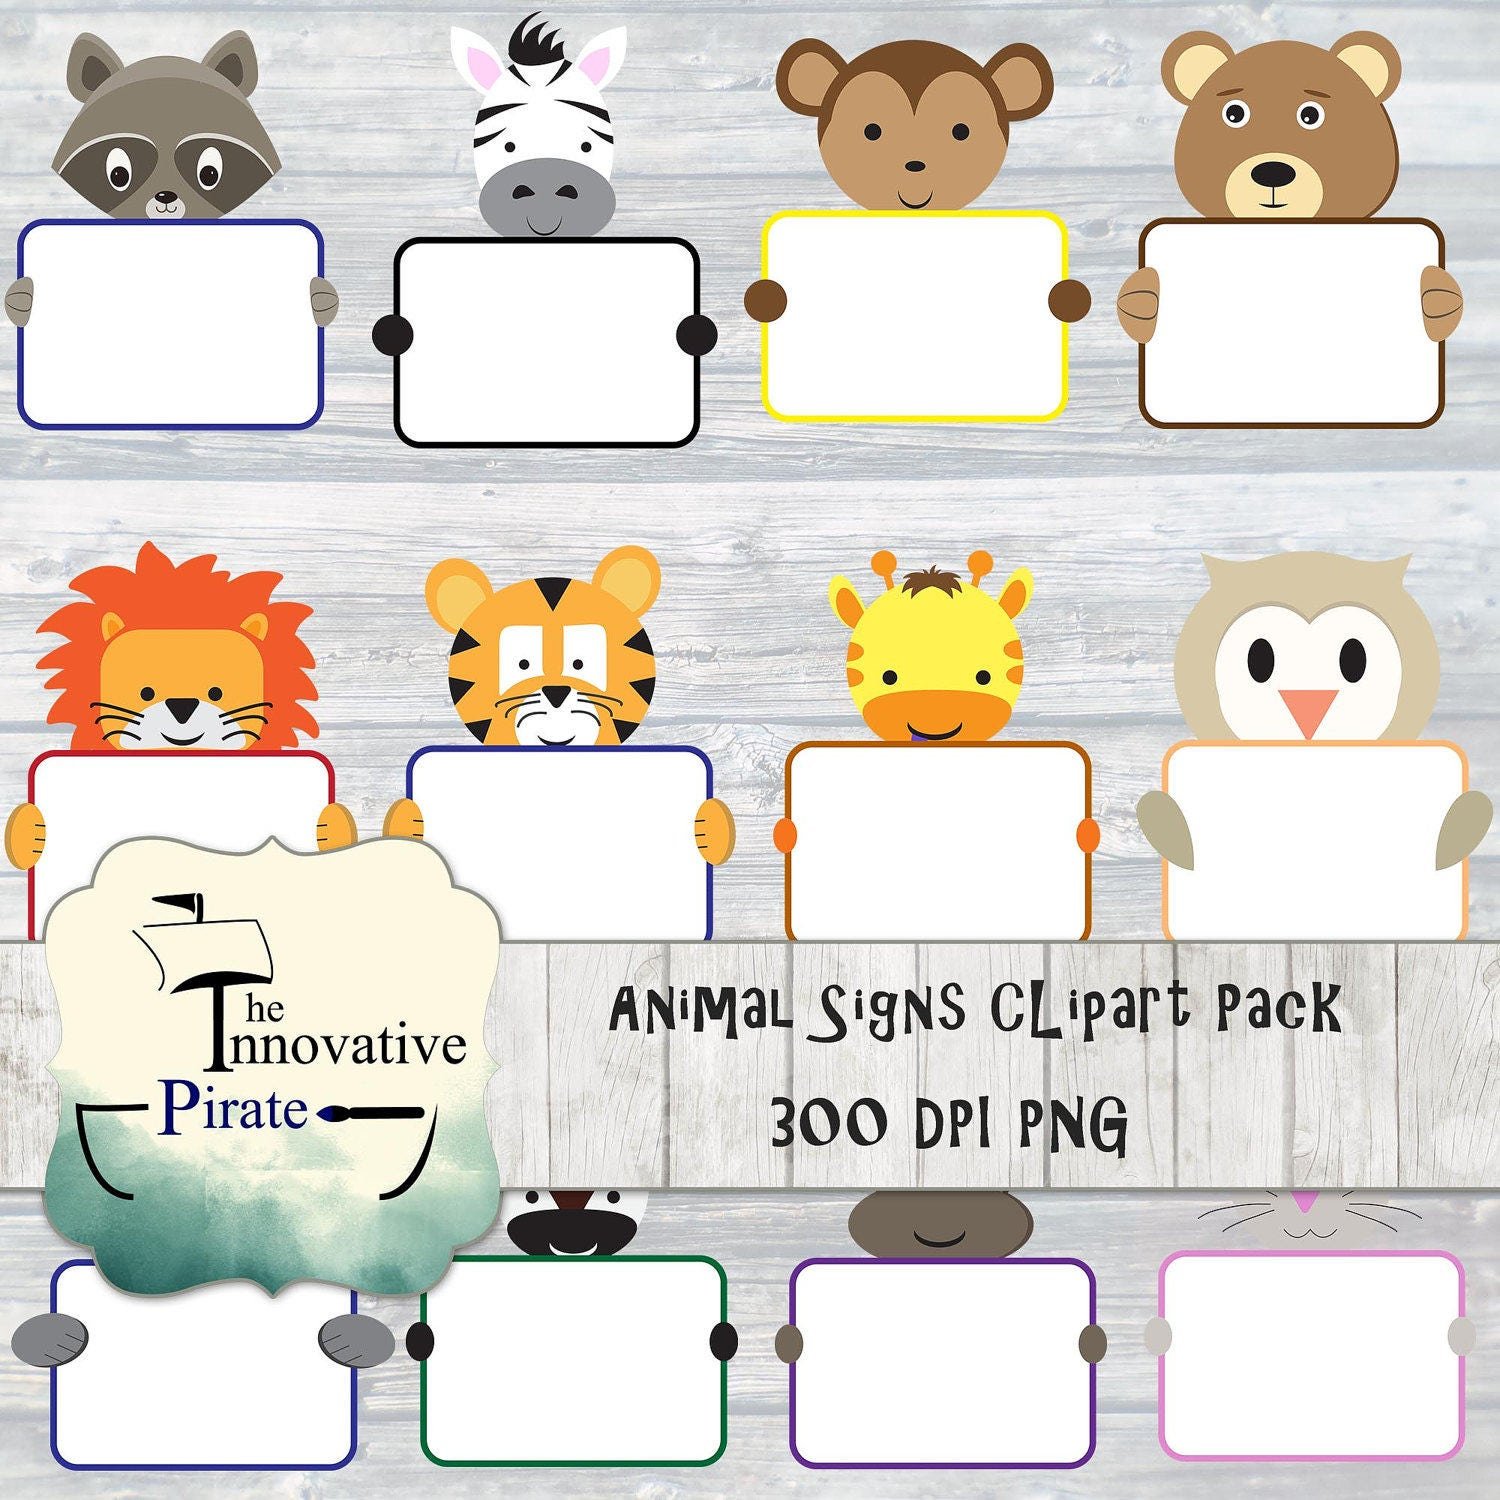 animal signs animals clipart holding cute pack jungle tags name forest birthday favor woodland diy don